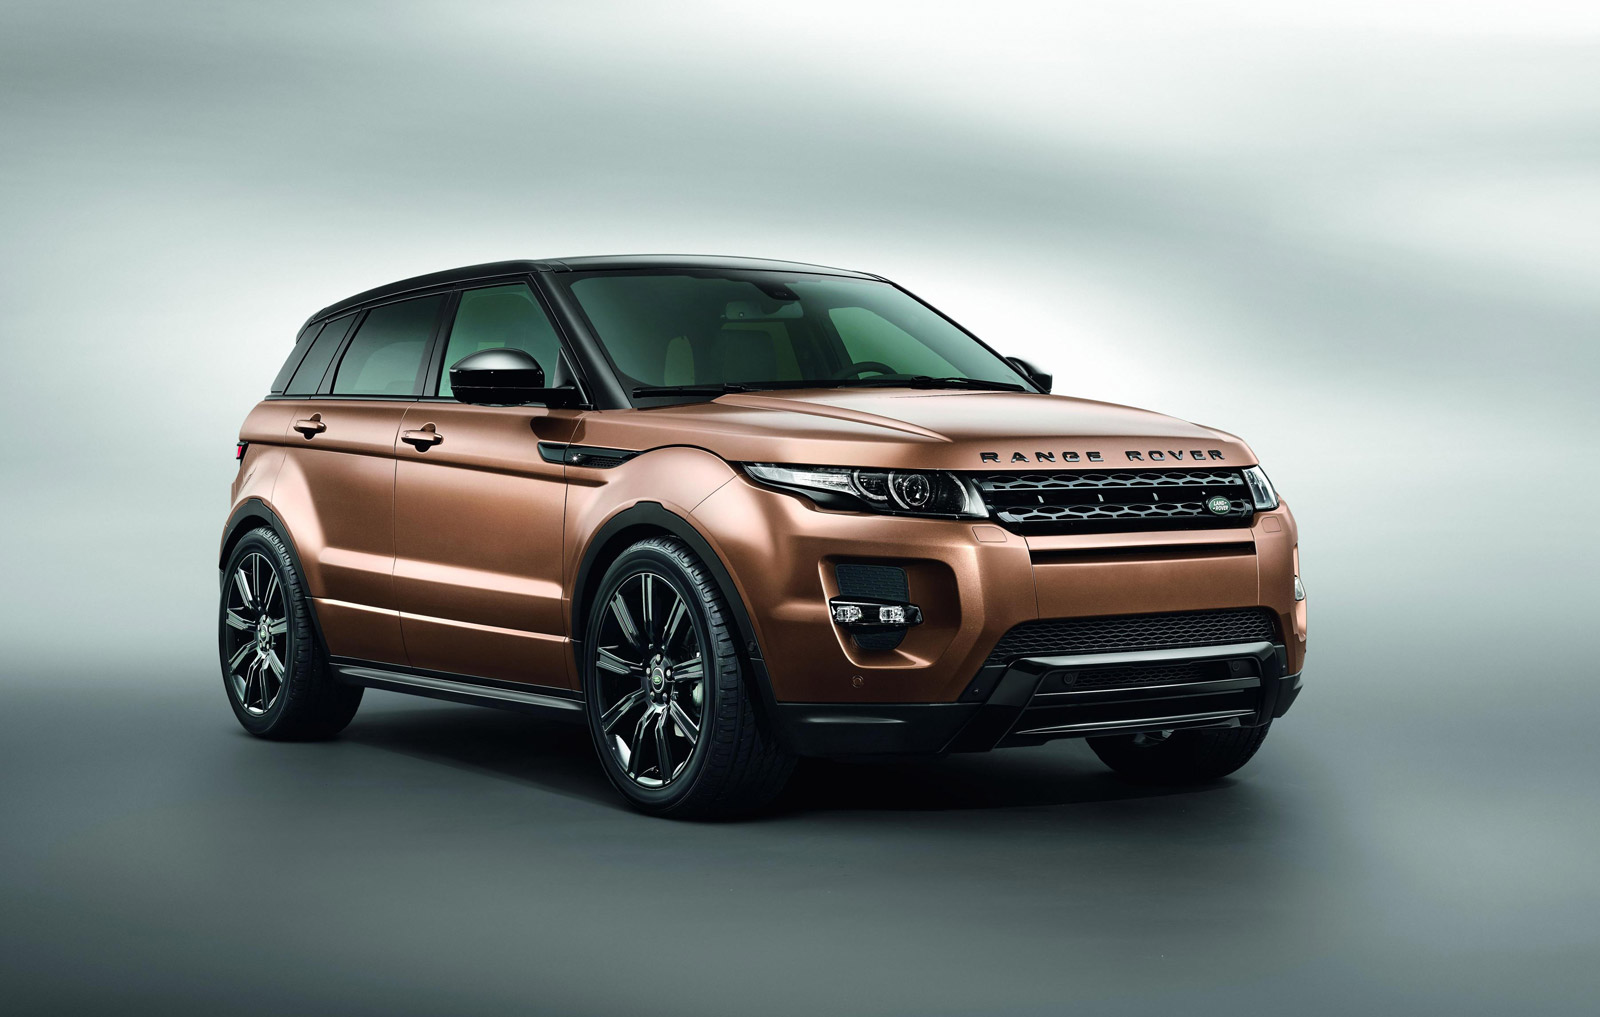 2014 land rover range rover evoque preview. Black Bedroom Furniture Sets. Home Design Ideas